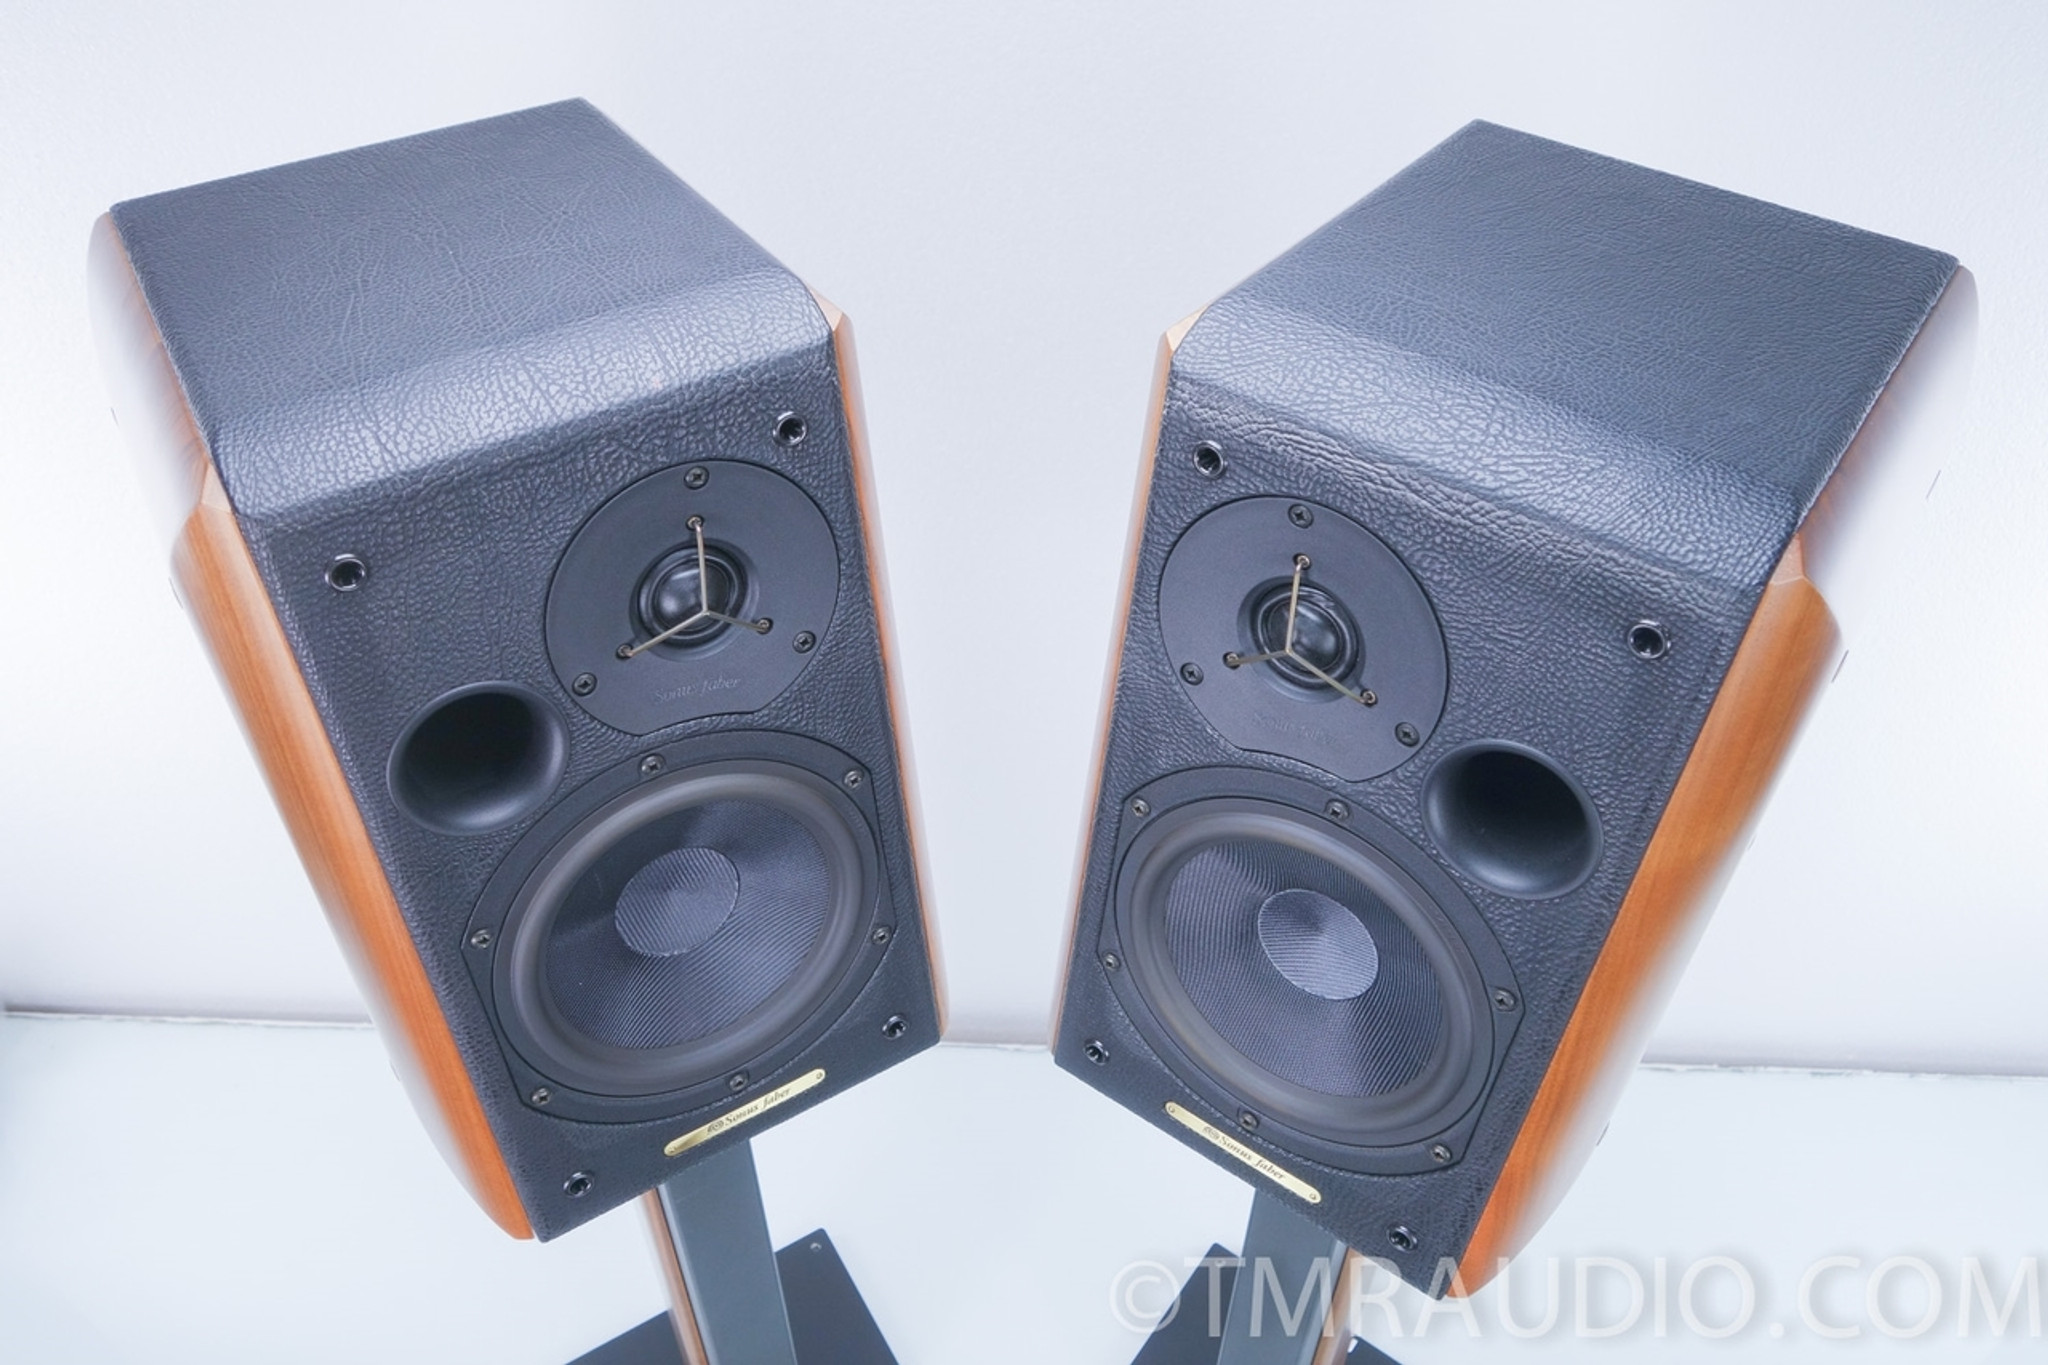 sonus faber concerto bookshelf speakers with stands - the music room